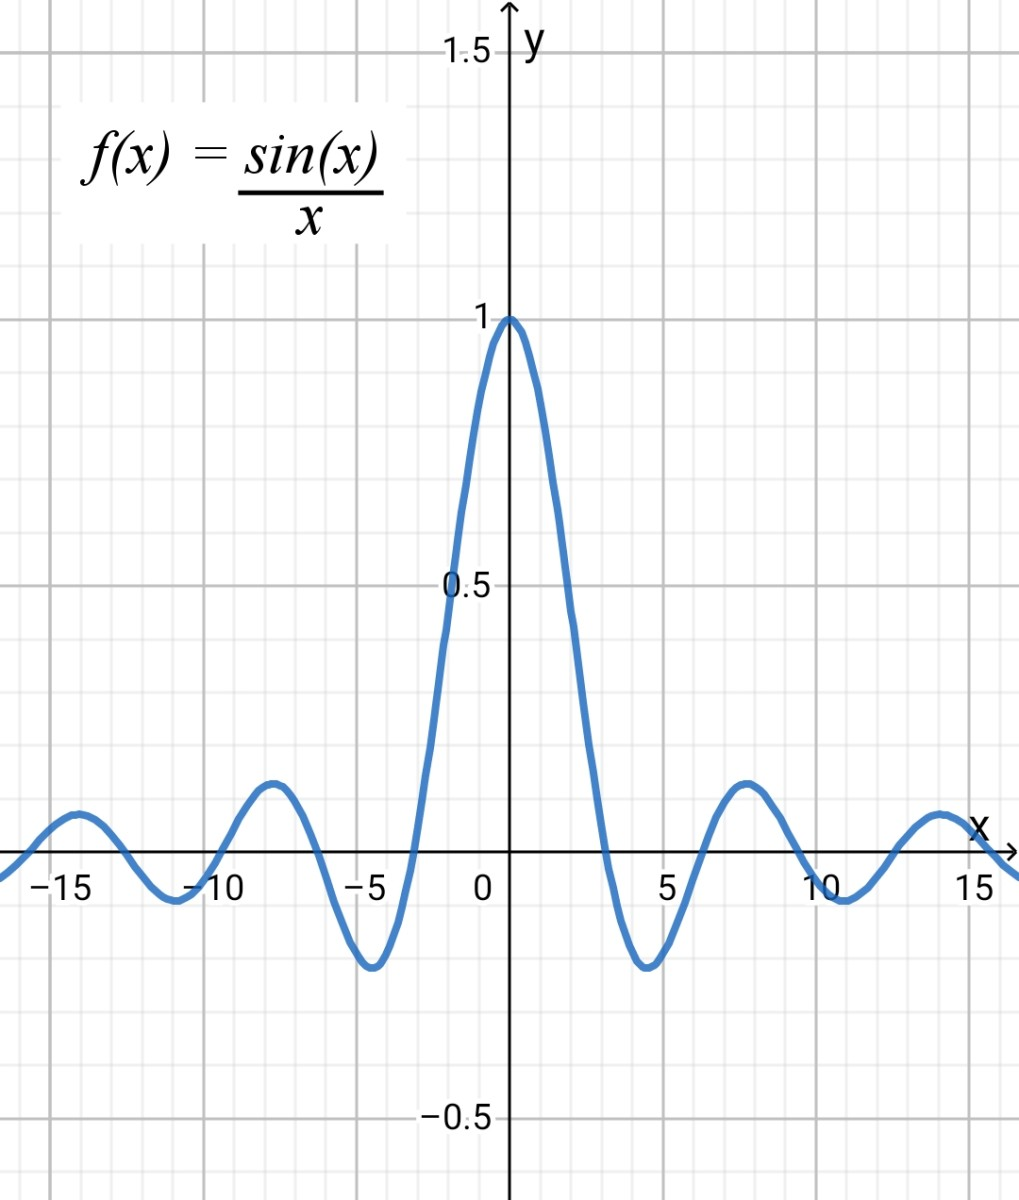 The function f(x) = sin (x) / x or sinc (x). The limit of f(x) as x approaches 0 from both sides is 1. The value of sinc (x) at x = 0 is undefined because we can't divide by zero and sinc (x) is discontinuous at this point.